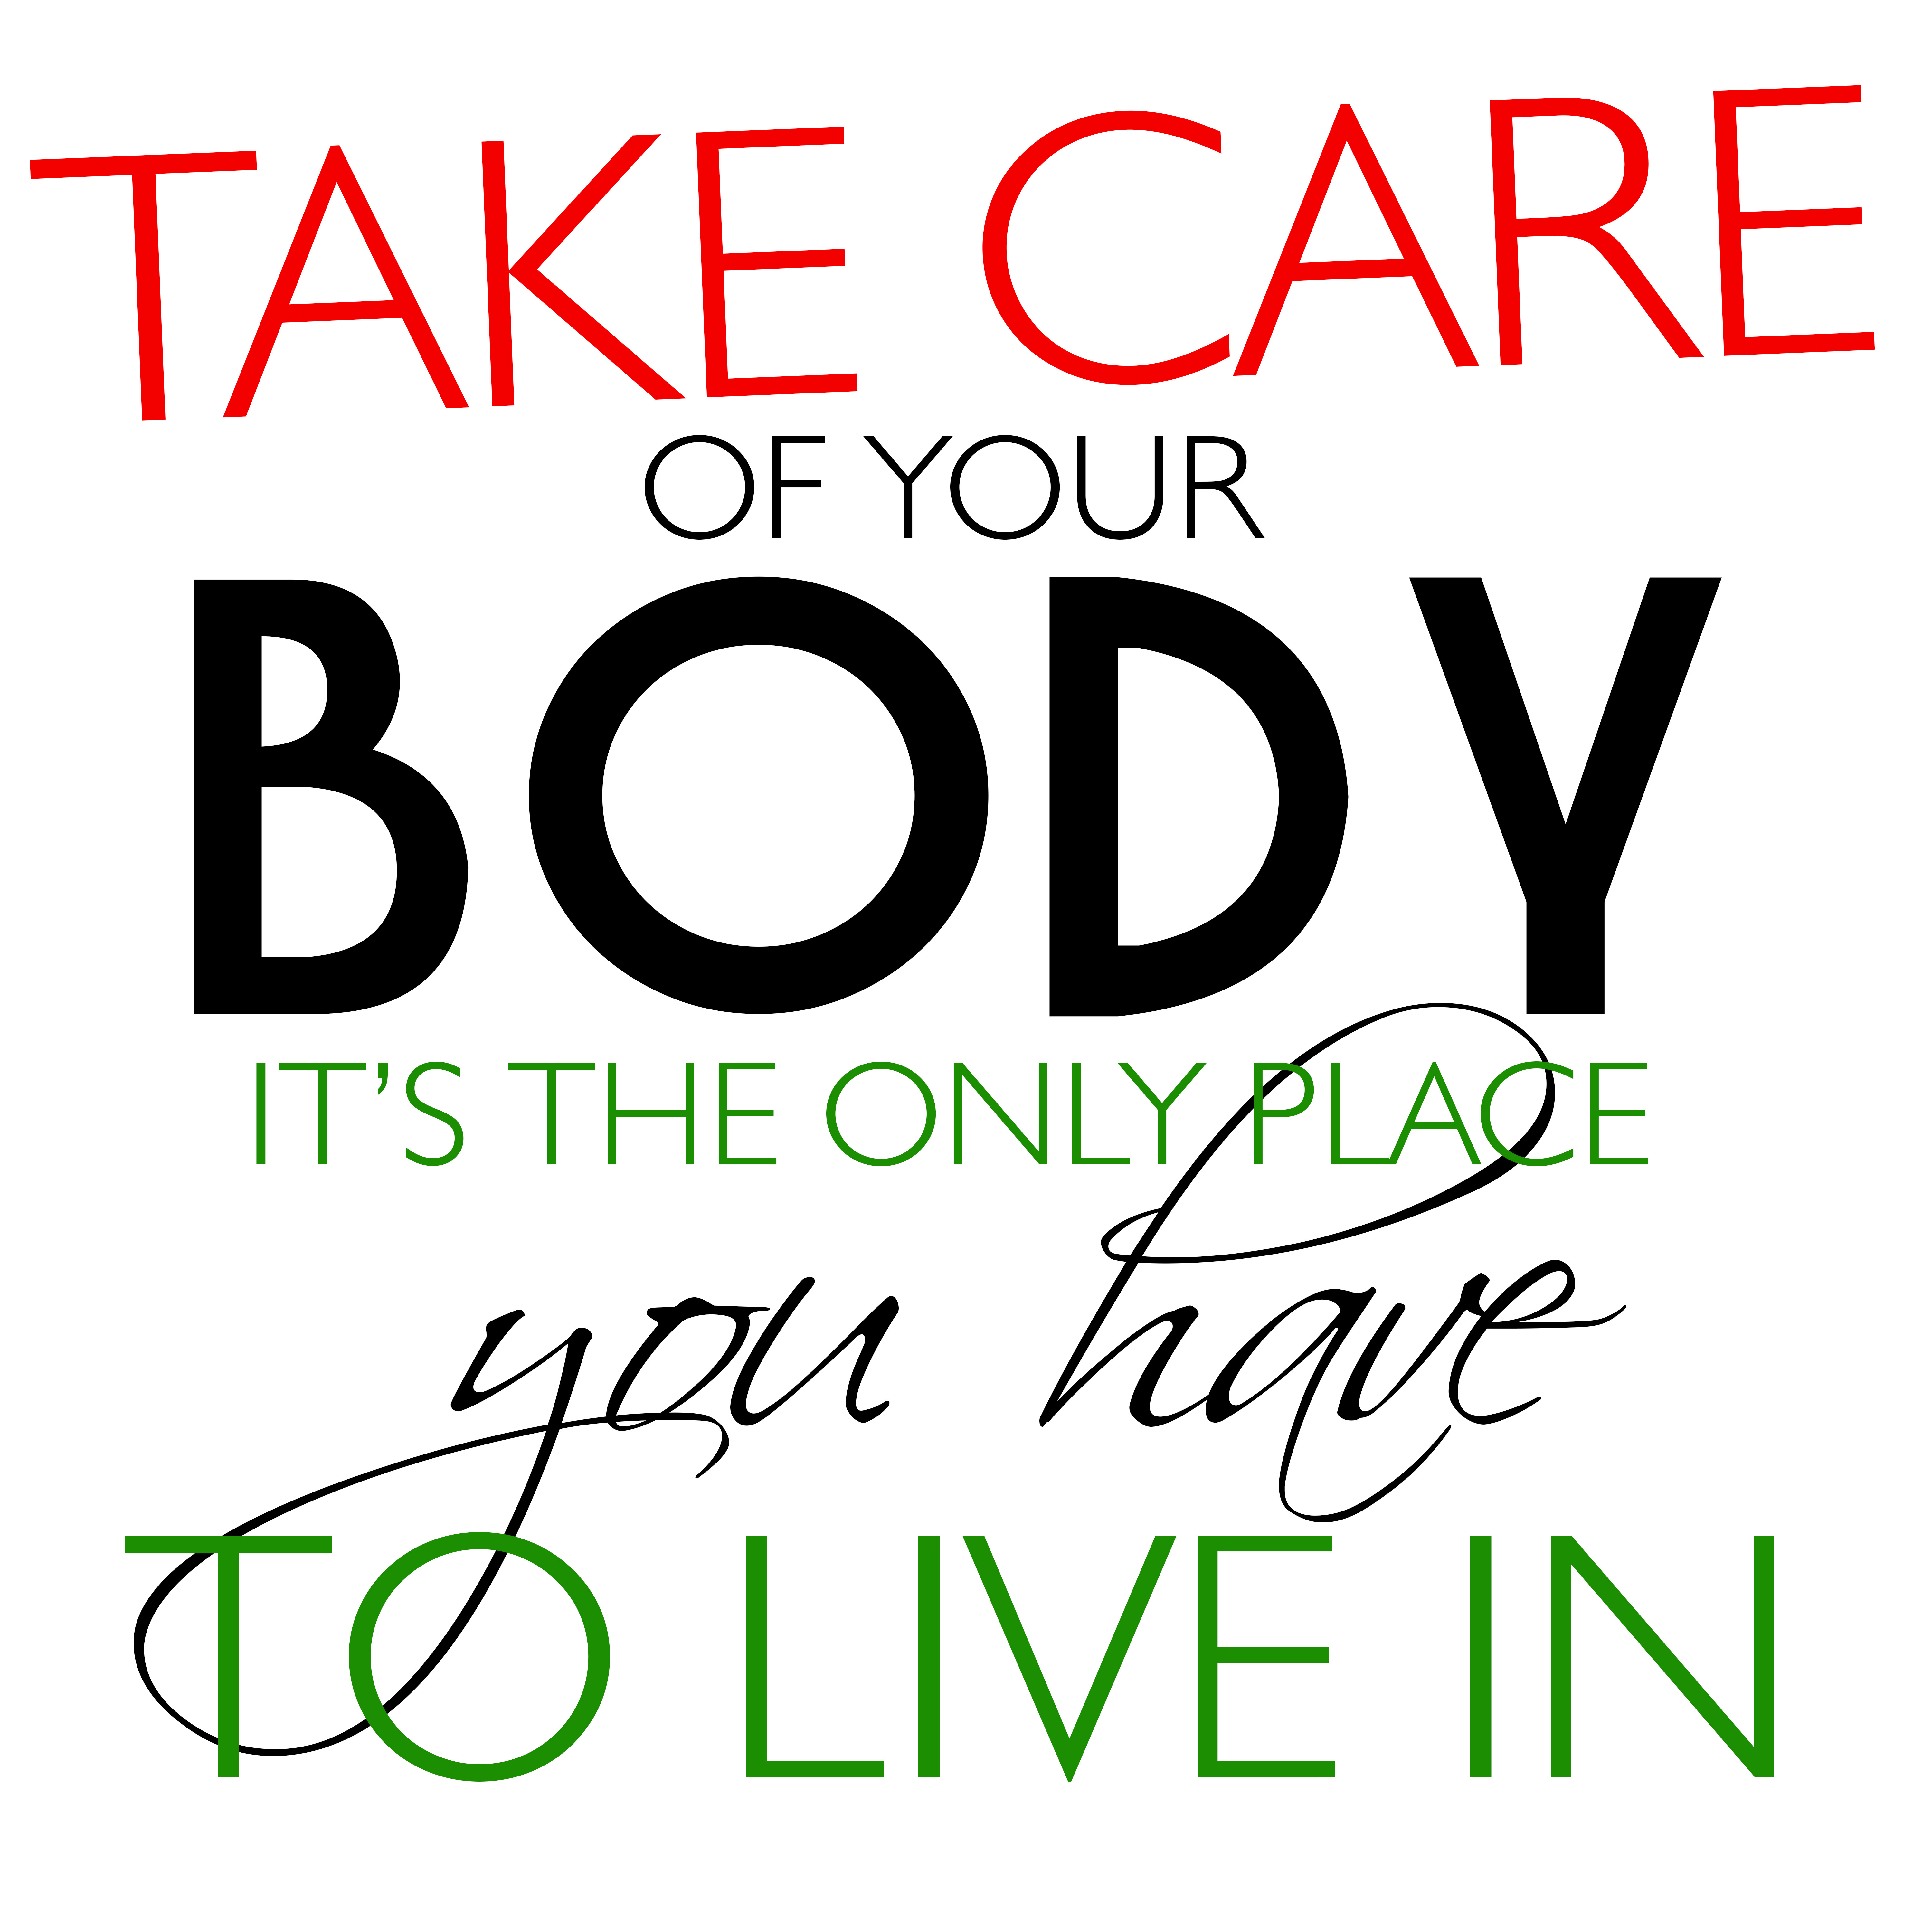 Quotes About Care For Your Body 35 Quotes